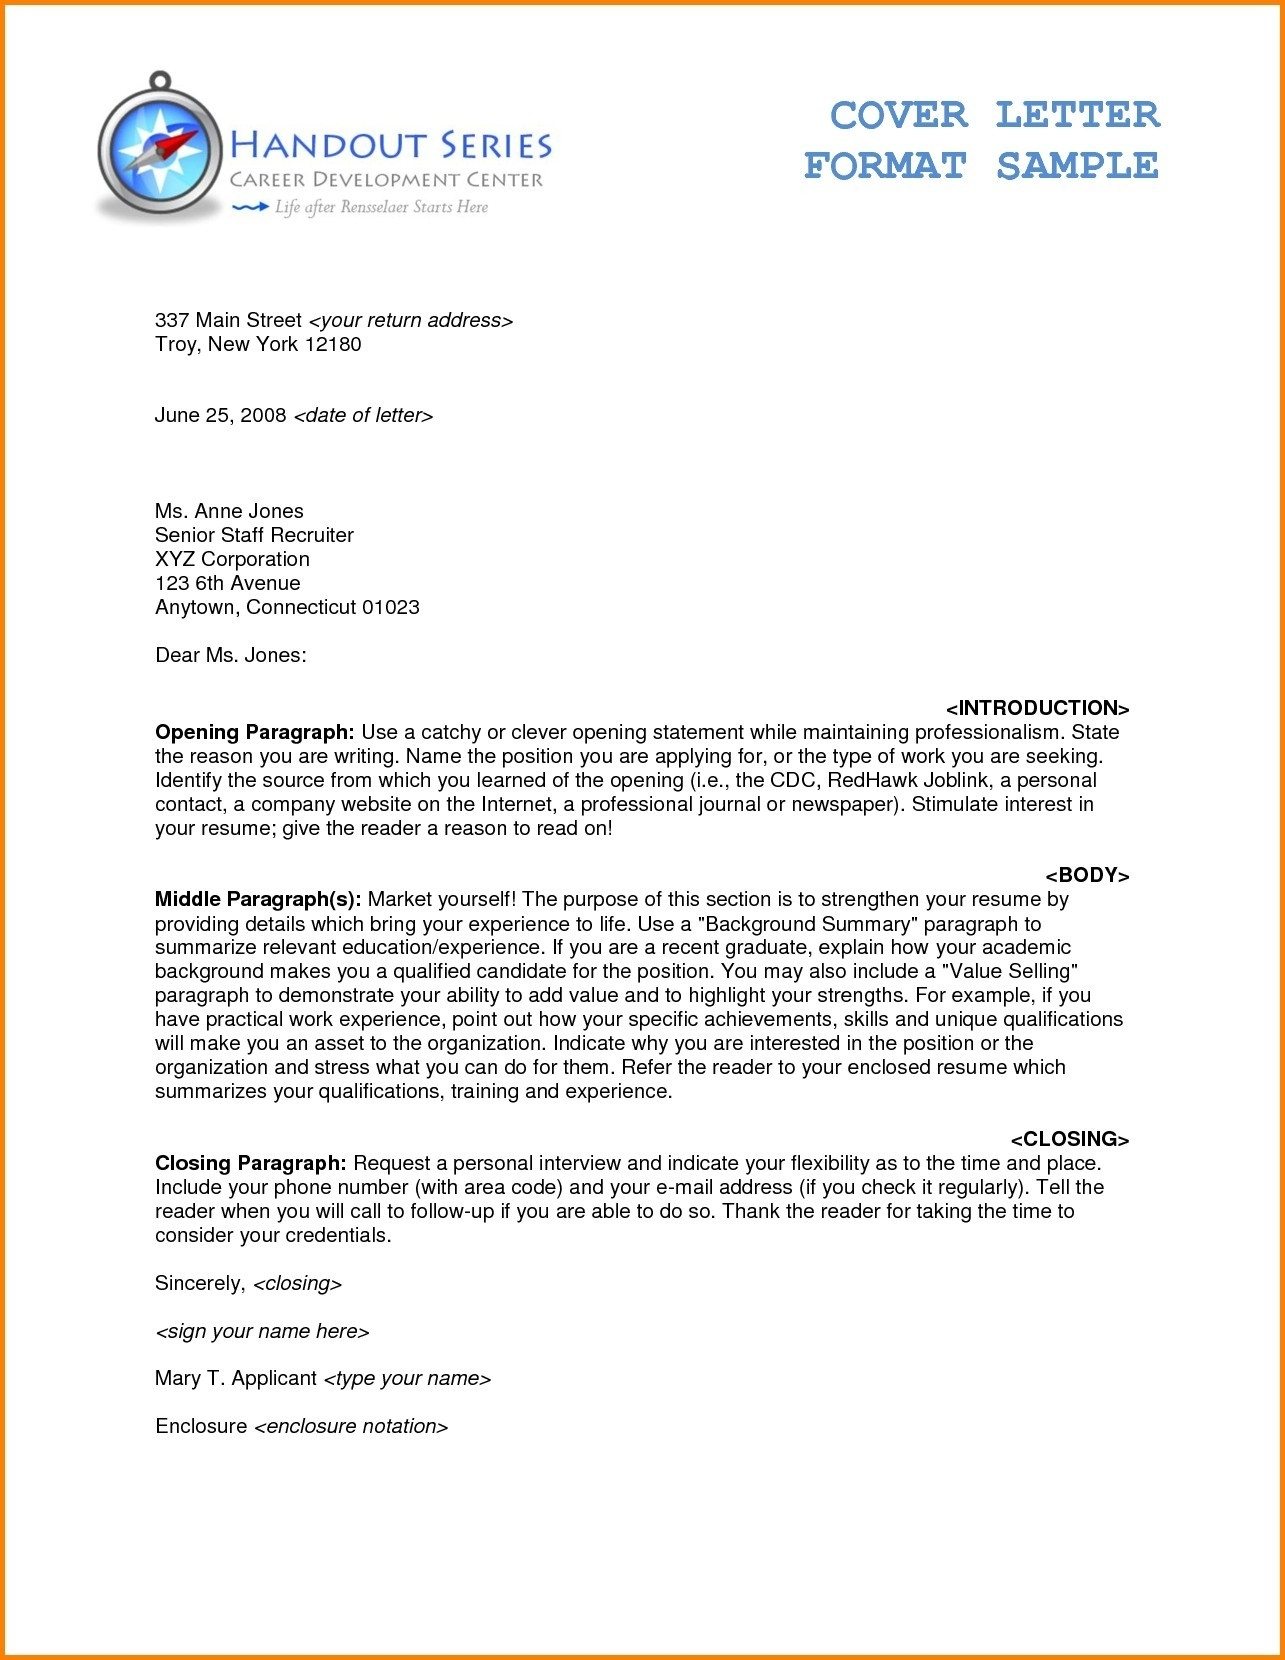 Business letter format enclosure examples and forms quotation letter format in word fresh business letter format regarding business letter format enclosure 20098 altavistaventures Image collections